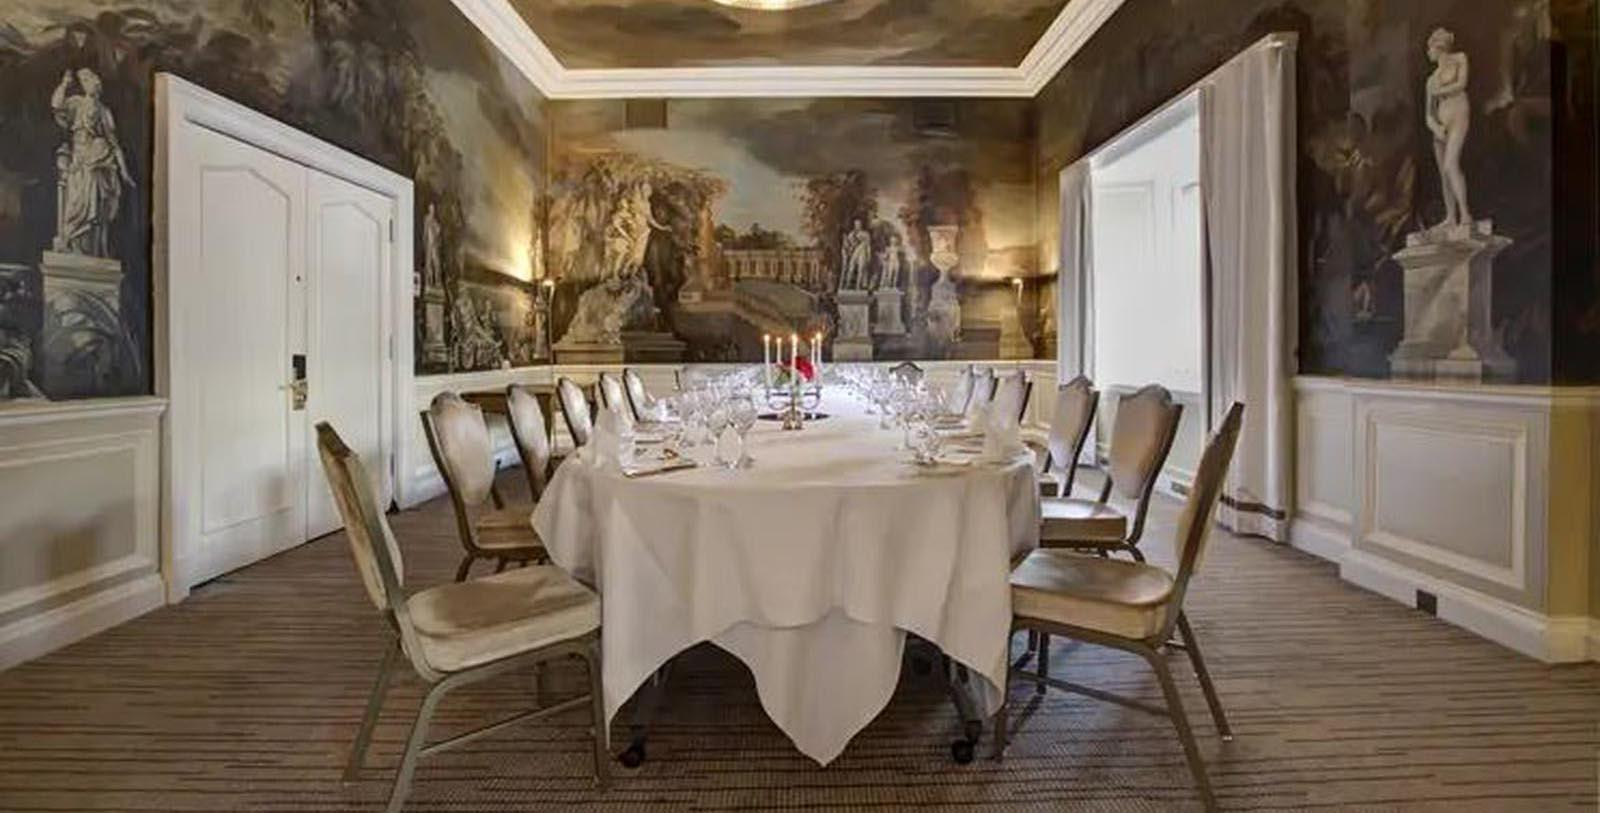 Image of Historic Meeting Room at Waldorf Astoria Edinburgh - The Caledonian, 1903, Member of Historic Hotels Worldwide, in Edinburgh, Scotland, United Kingdom, Discover